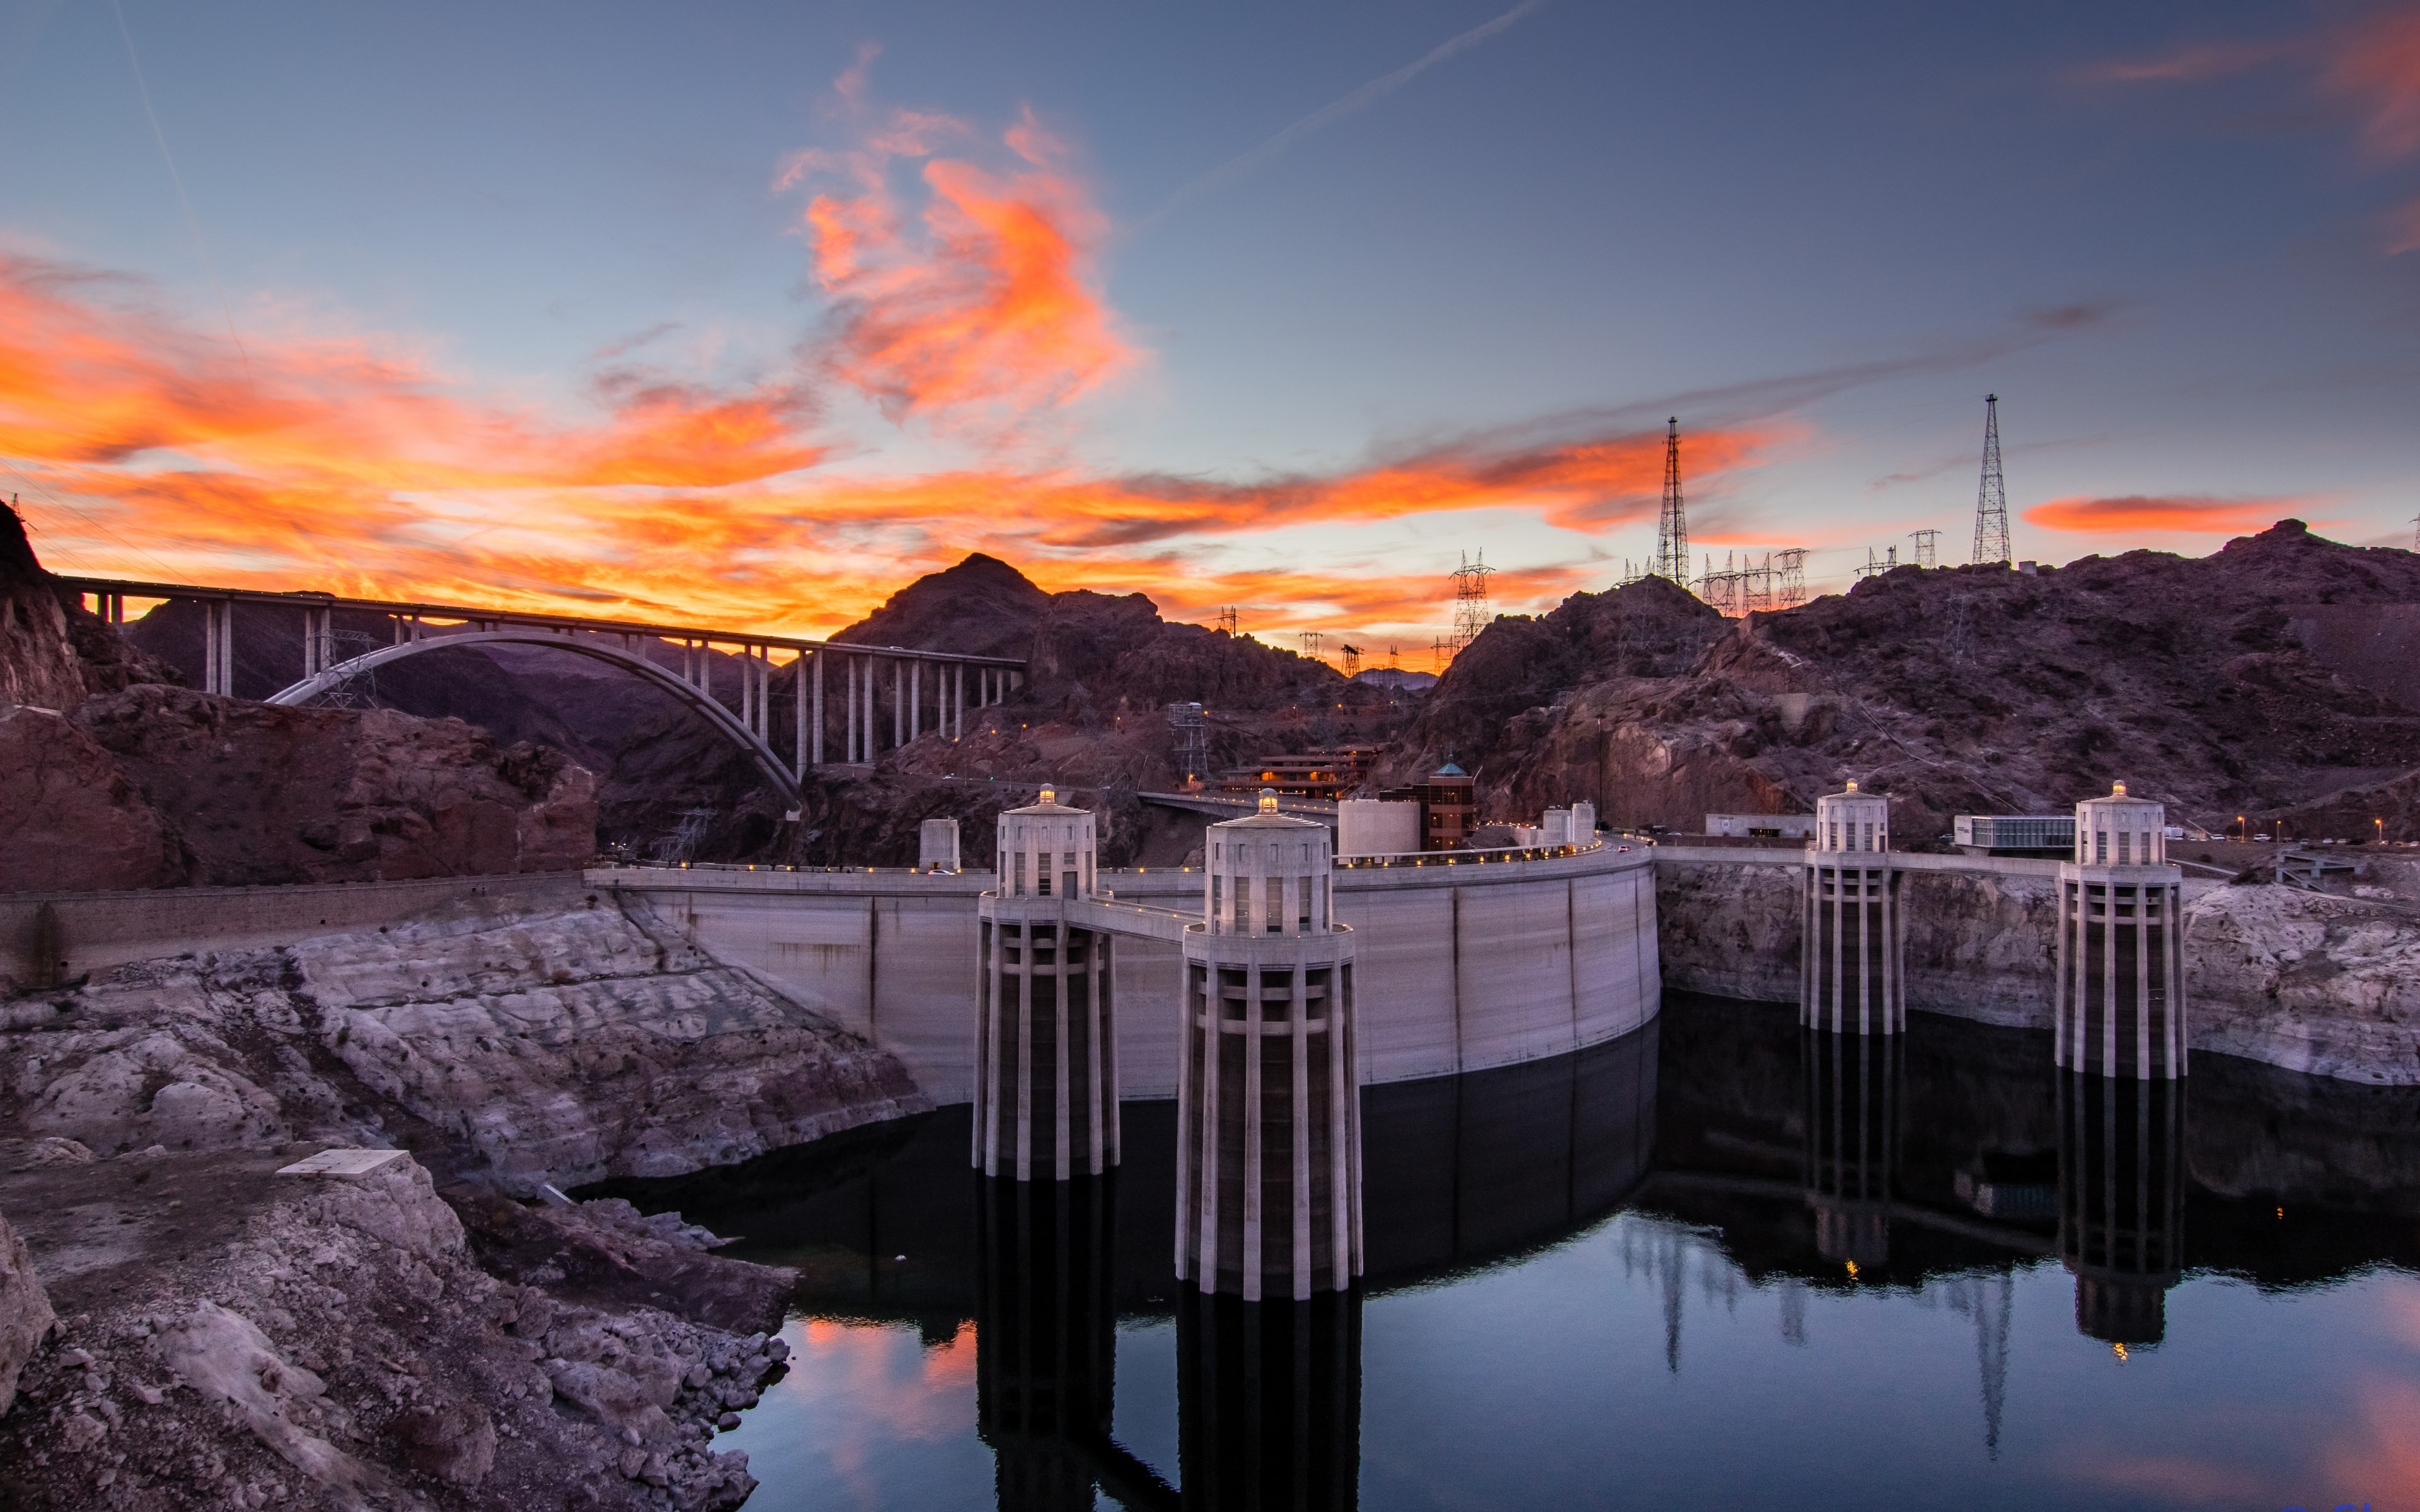 Hoover Dam at sunset | 3840x2400 wallpaper